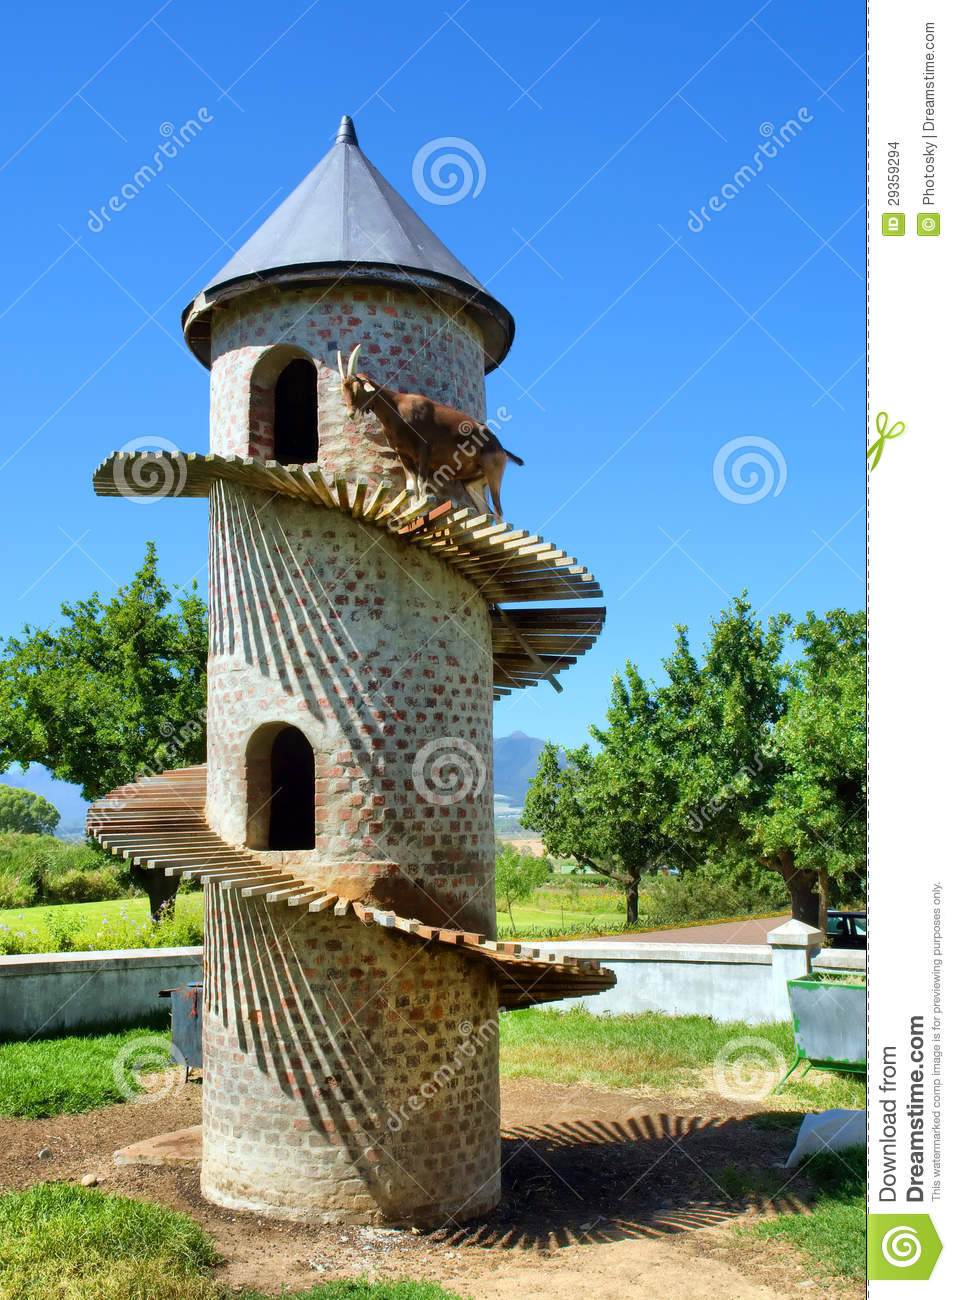 Funny Goat House Stock Images.